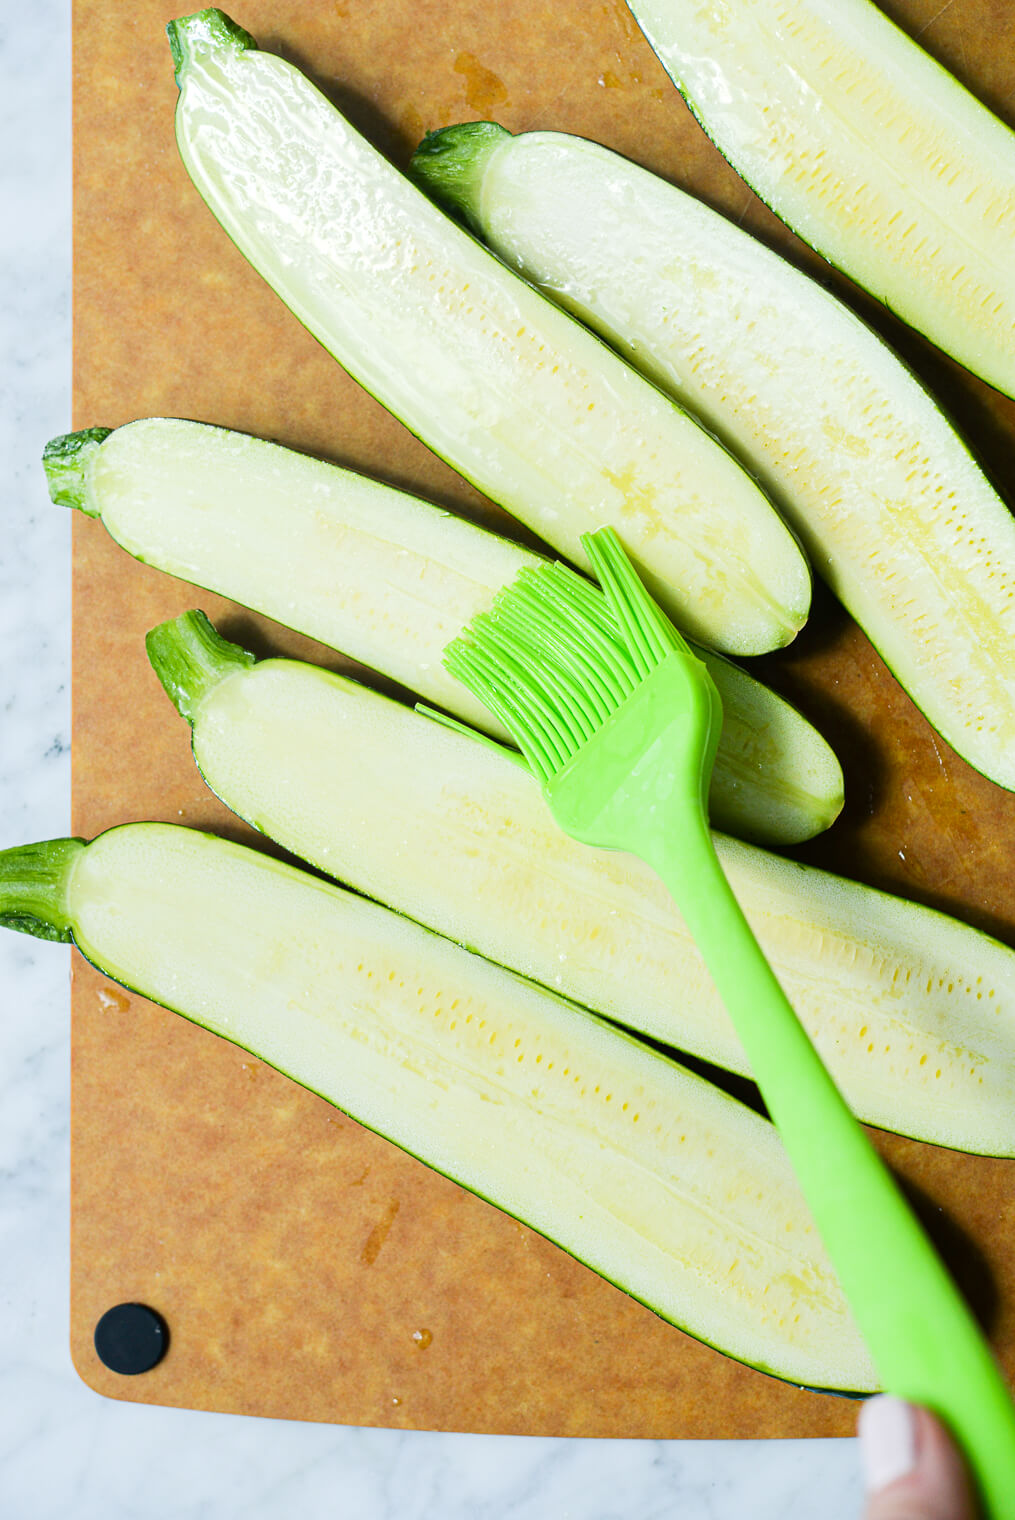 6 halves of zucchini being rubbed with olive oil using a basting brush